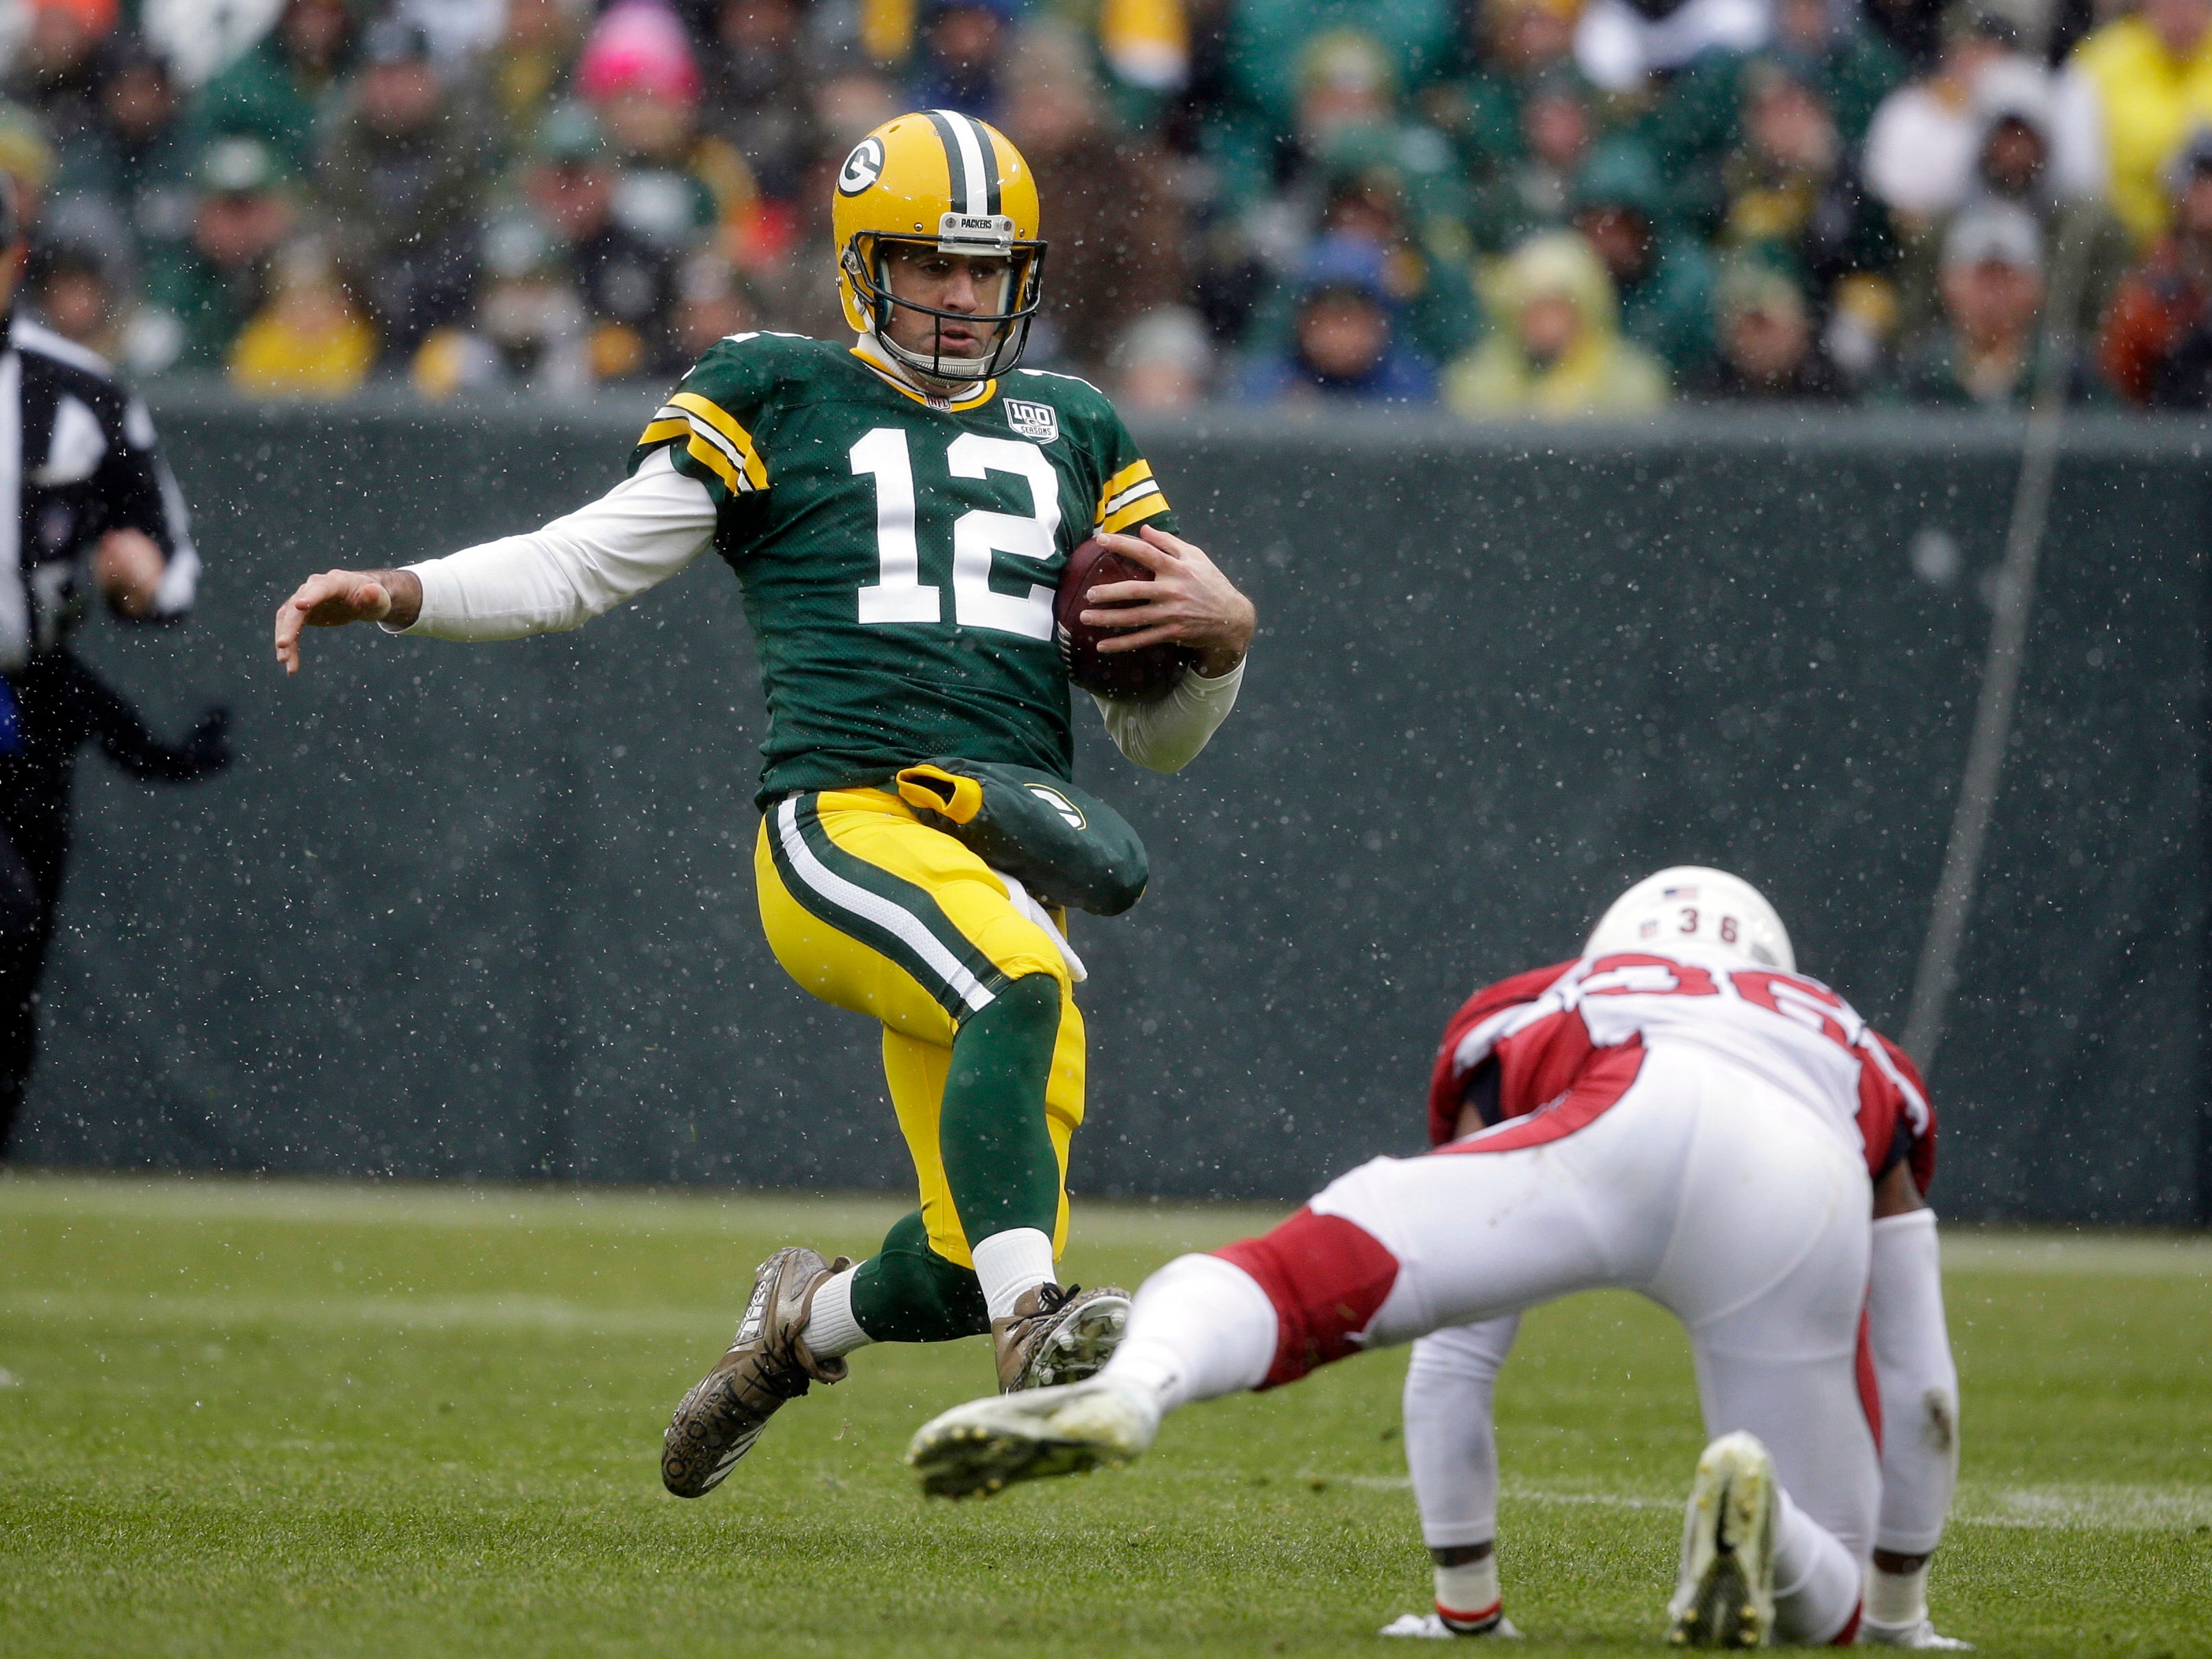 Green Bay Packers quarterback Aaron Rodgers slides to down the ball against the Arizona Cardinals during the first half of an NFL football game Sunday, Dec. 2, 2018, in Green Bay, Wis. (AP Photo/Jeffrey Phelps)